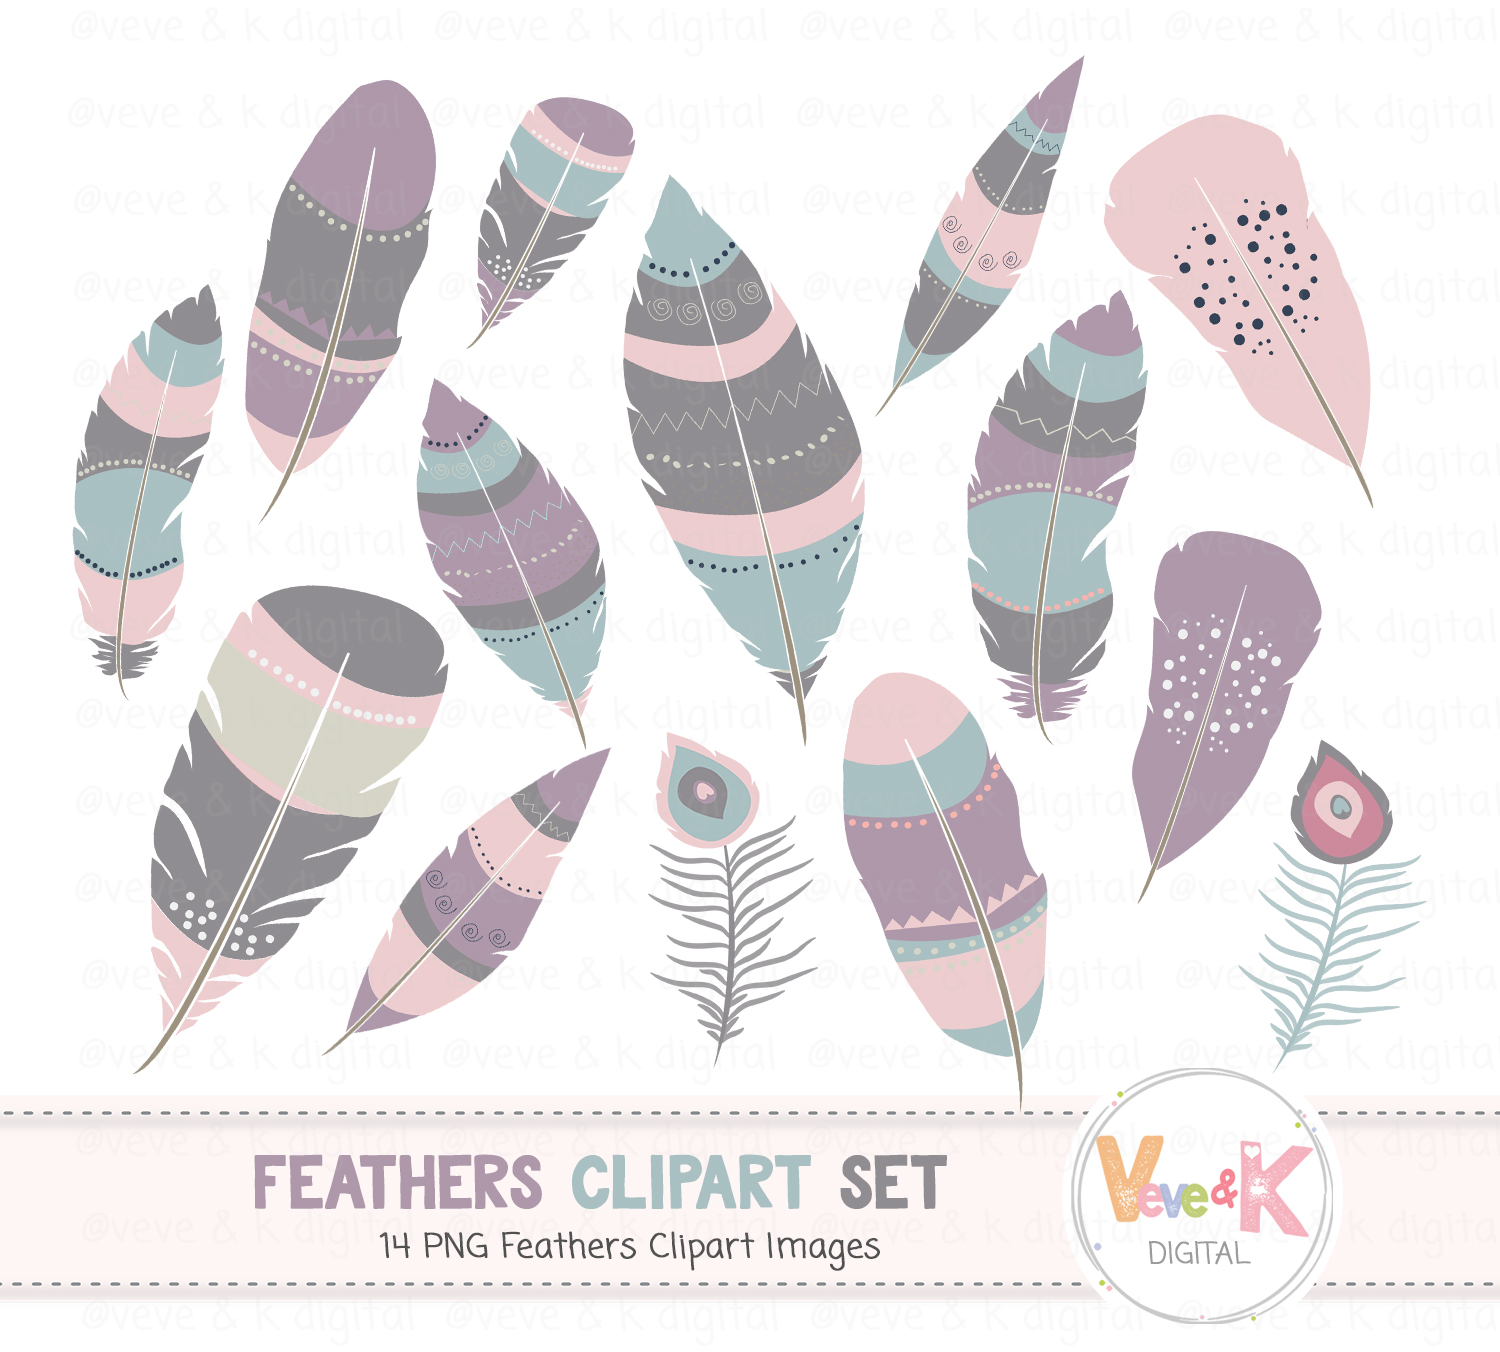 Boho feathers clipart graphic freeuse download Boho Feathers Clipart, Digital Feathers, Aztec Feathers, Boho Feathers,  Tribal Feathers Clipart, Commercial Use, Feathers Images, Boho graphic freeuse download